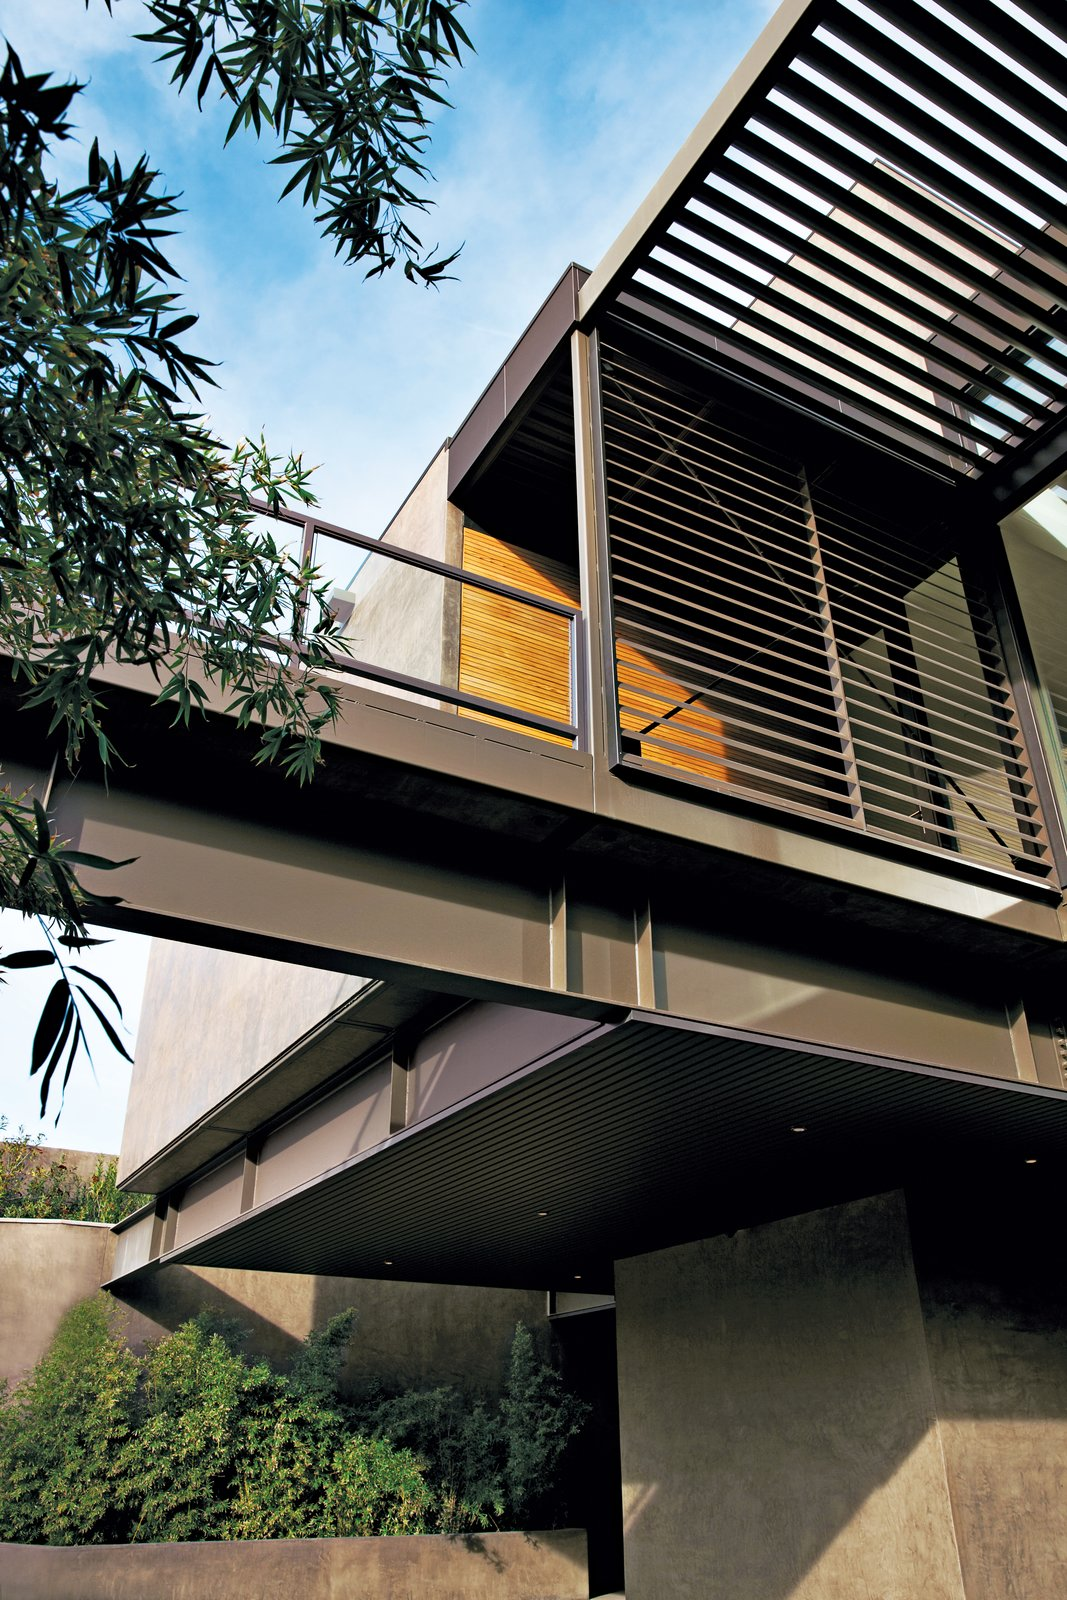 Exterior, Metal Siding Material, Concrete Siding Material, and Prefab Building Type Twenty-two 12-foot-wide steel-frame modules were combined to form nine to 14-foot-high rooms that were stacked and bolted together. Ten deck modules added more than 4,700 square feet of sheltered outdoor space.  Best Photos